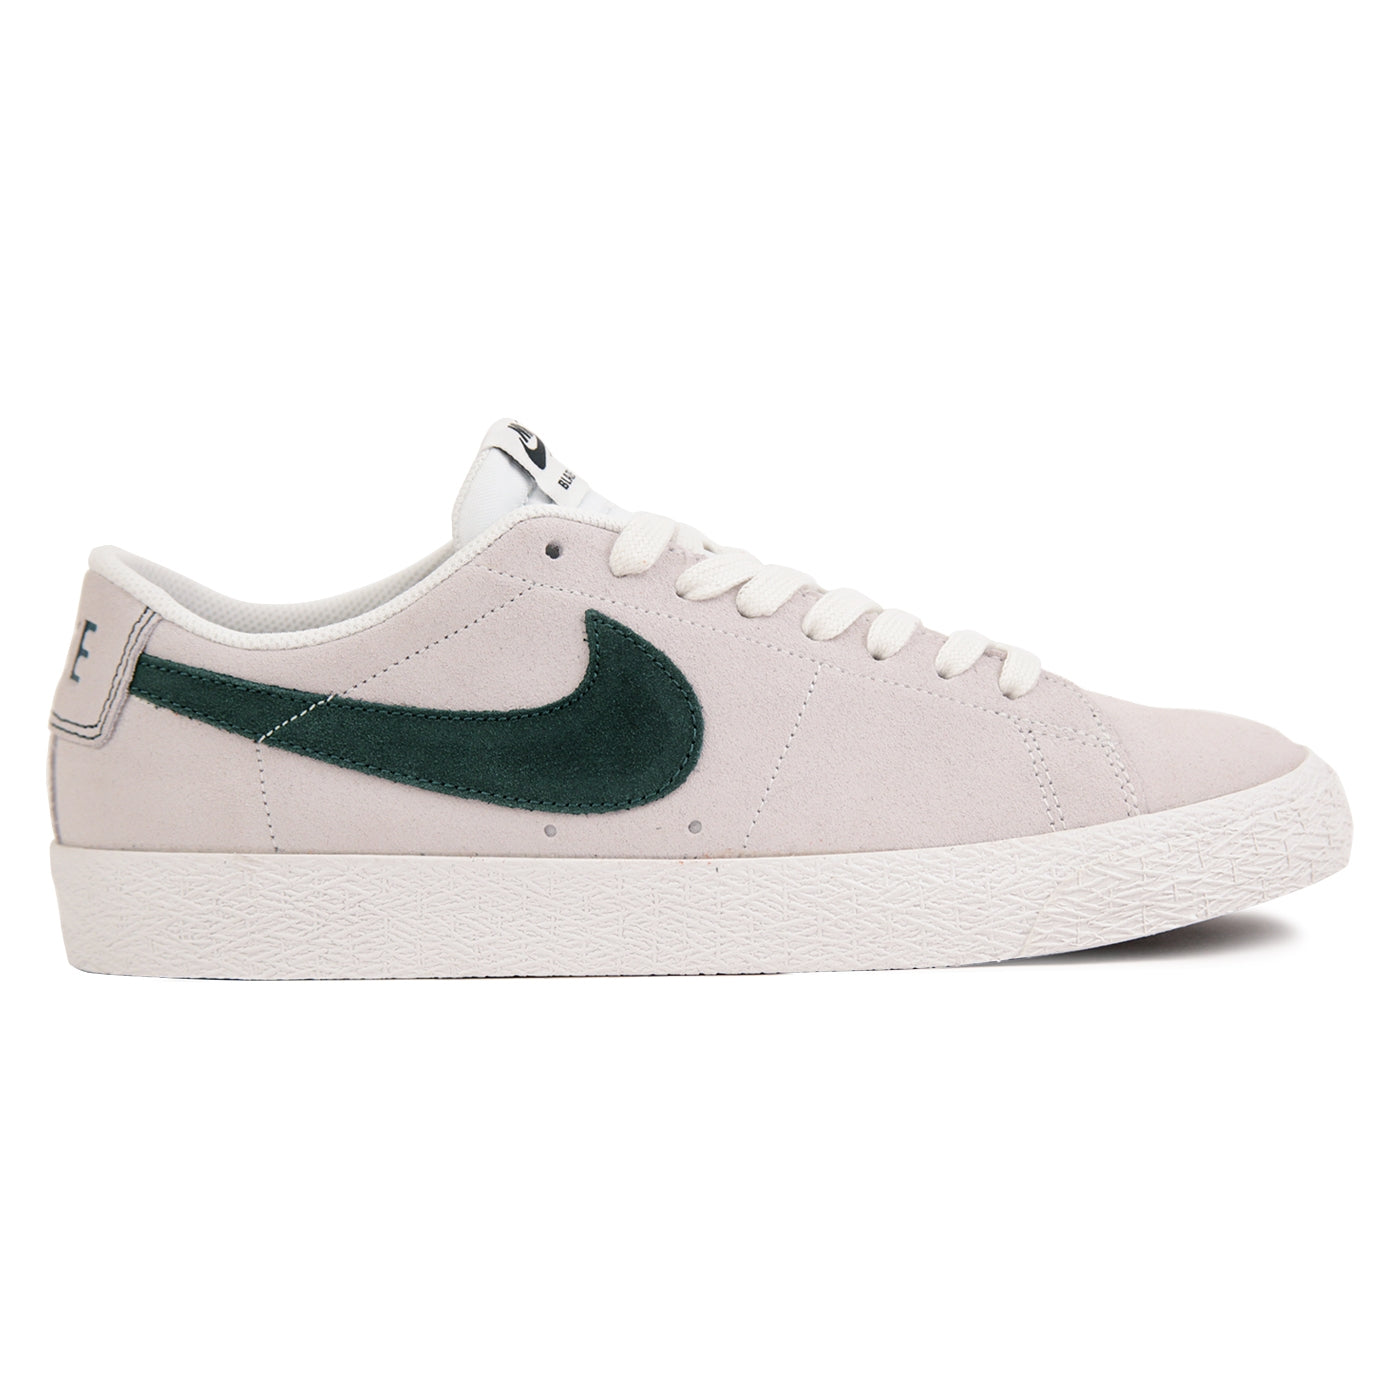 cc9023e0467 Zoom Blazer Low Shoes in Summit White   Deep Jungle by Nike SB ...